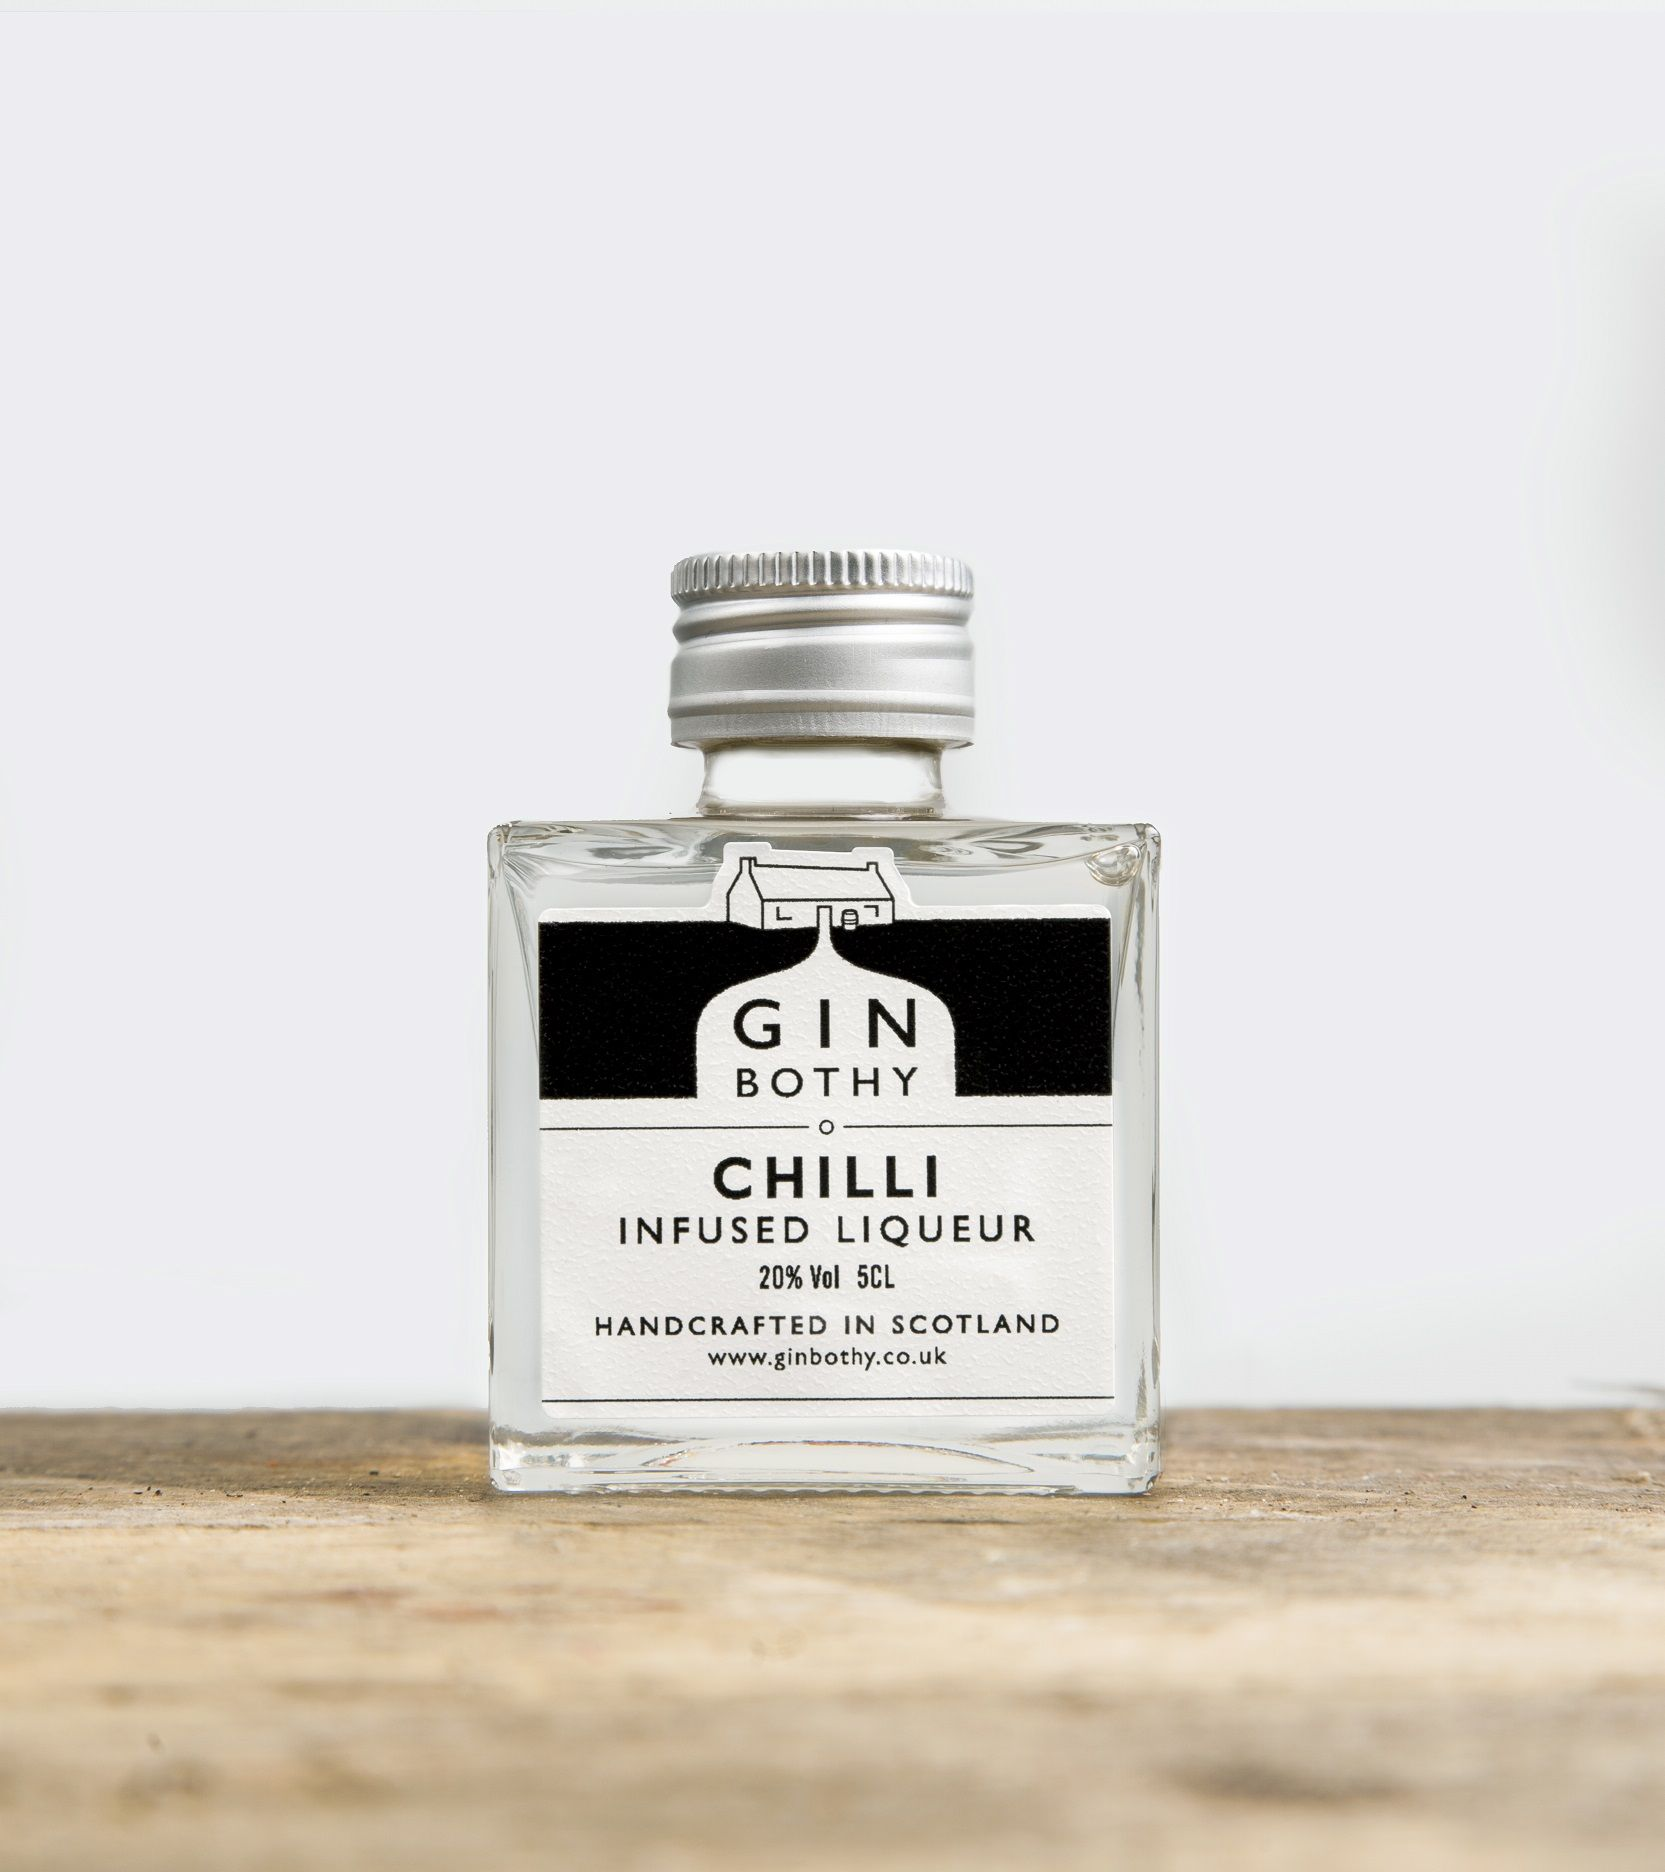 Gin bothy chilli infused liqueur gin artisan gin gin